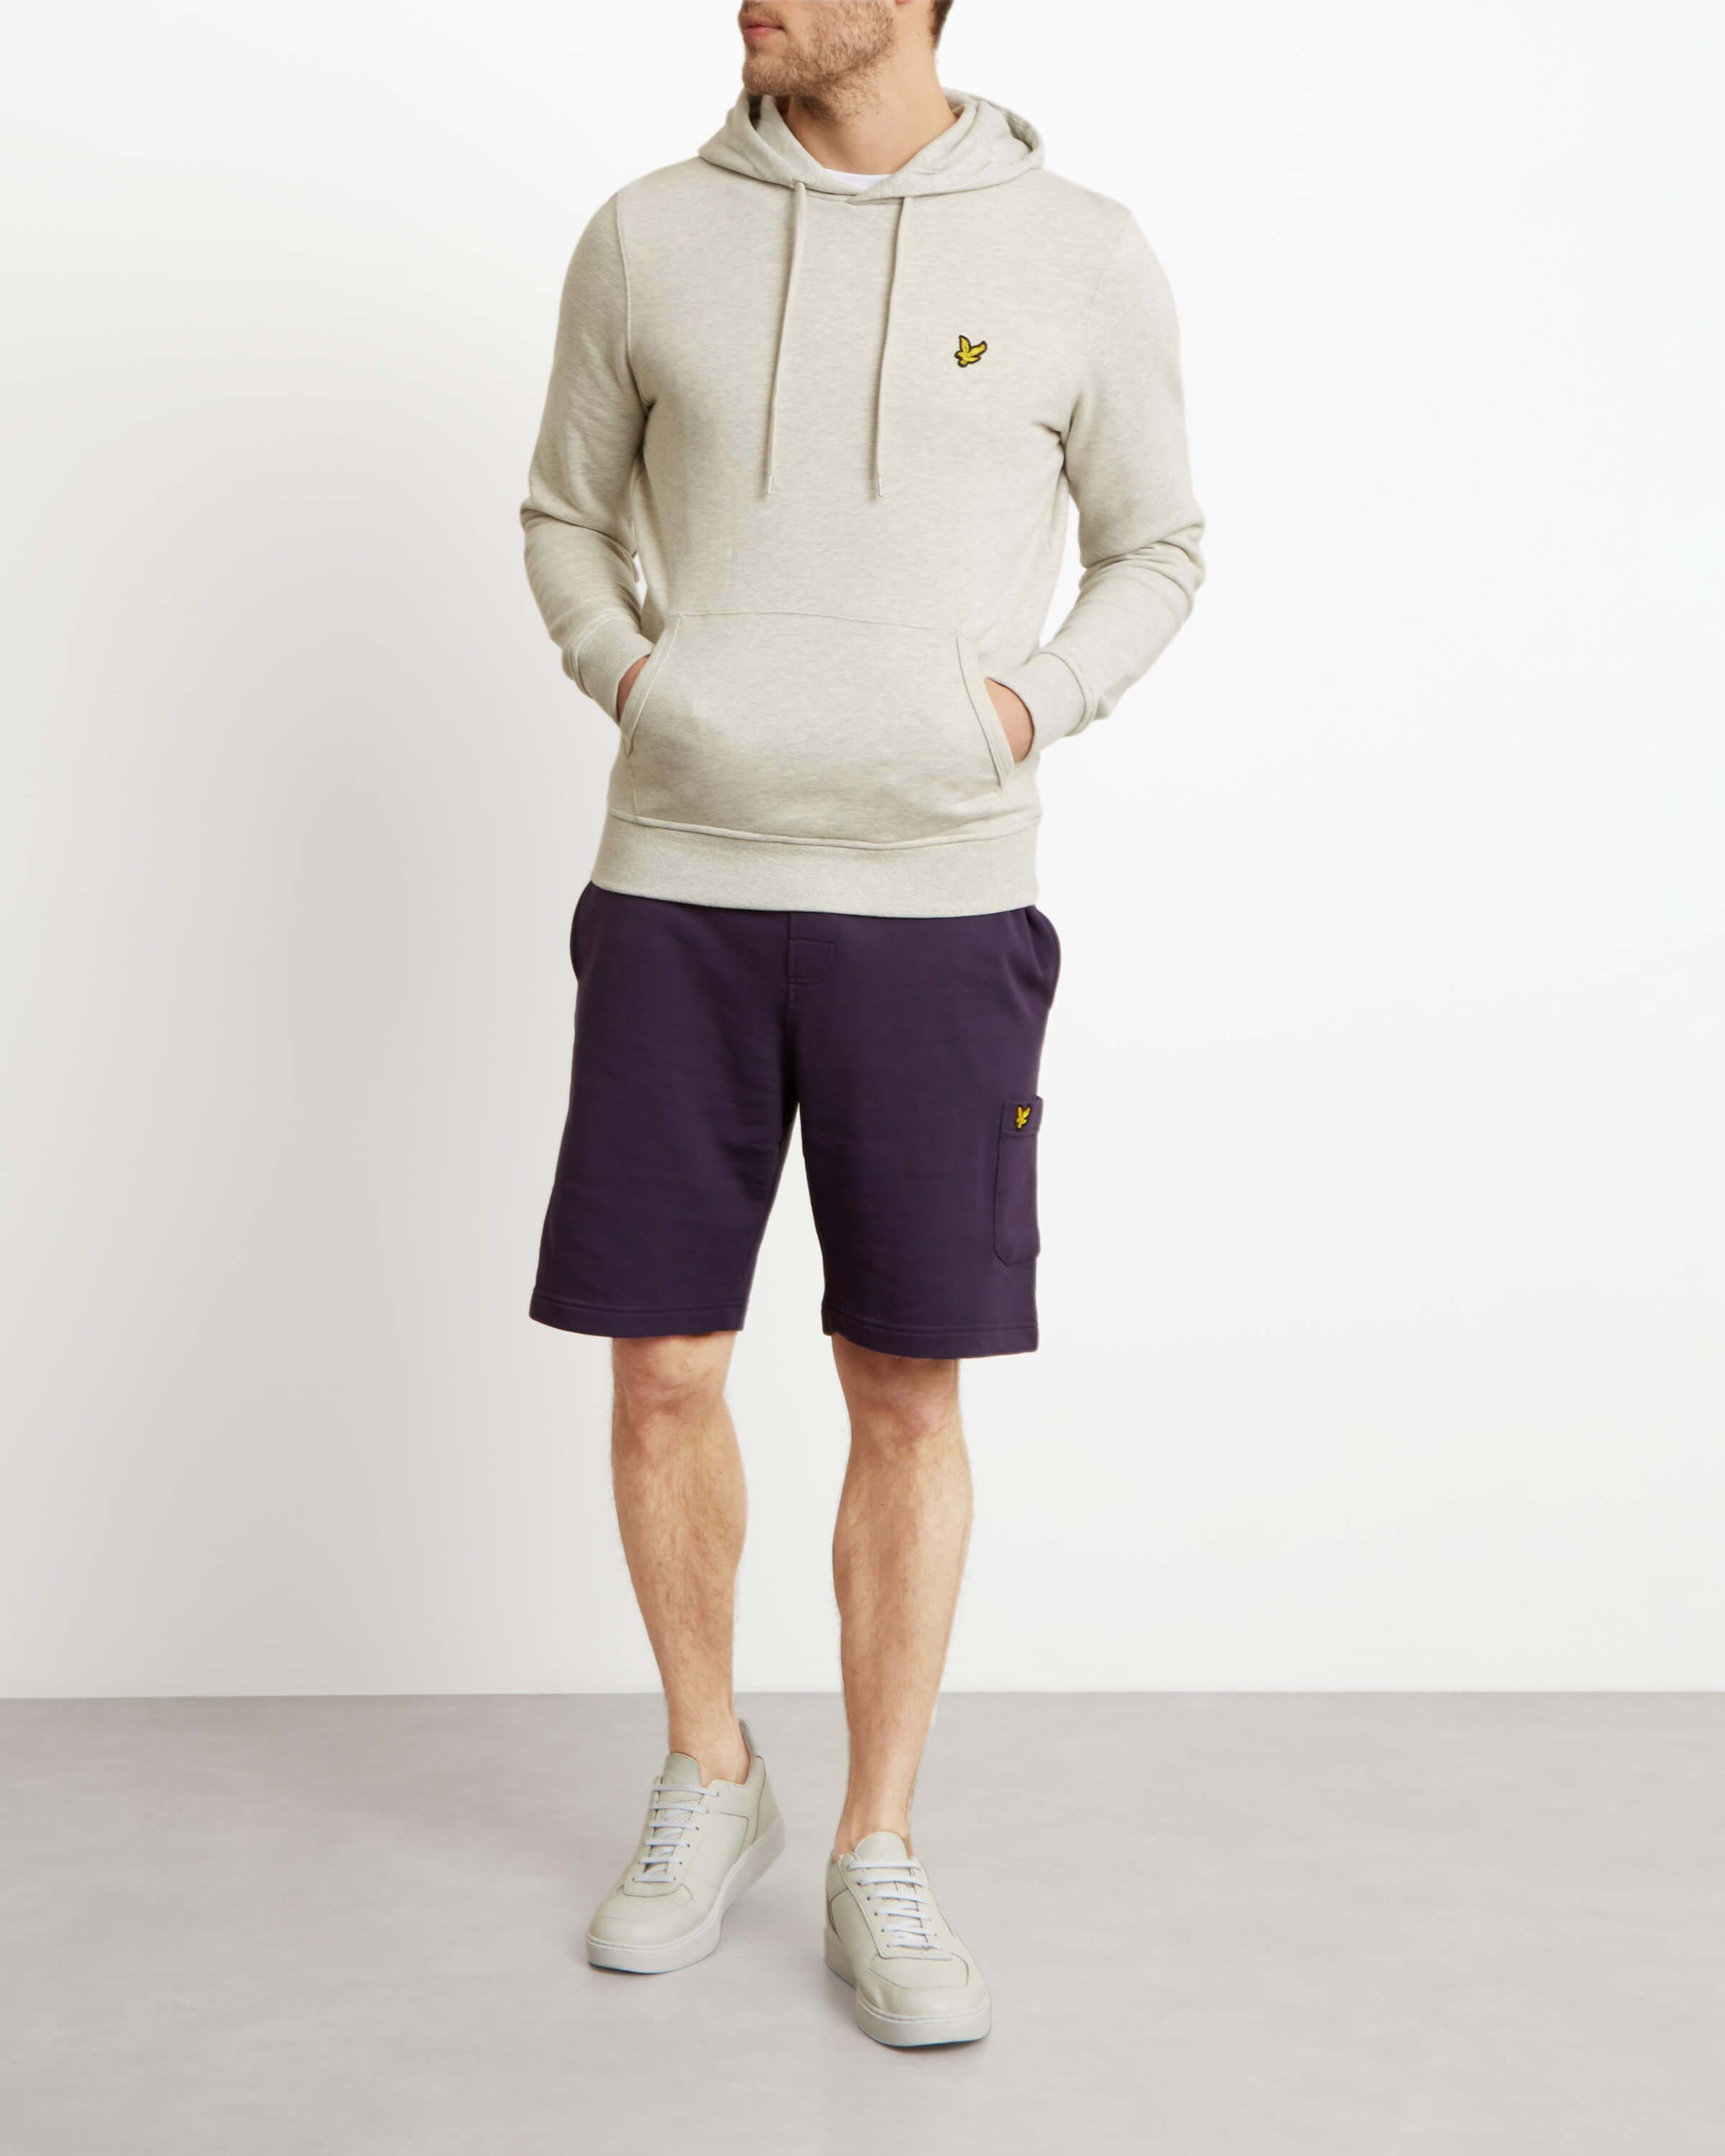 Lyle-and-Scott-Mens-Pullover-Hoodie-Cotton thumbnail 26